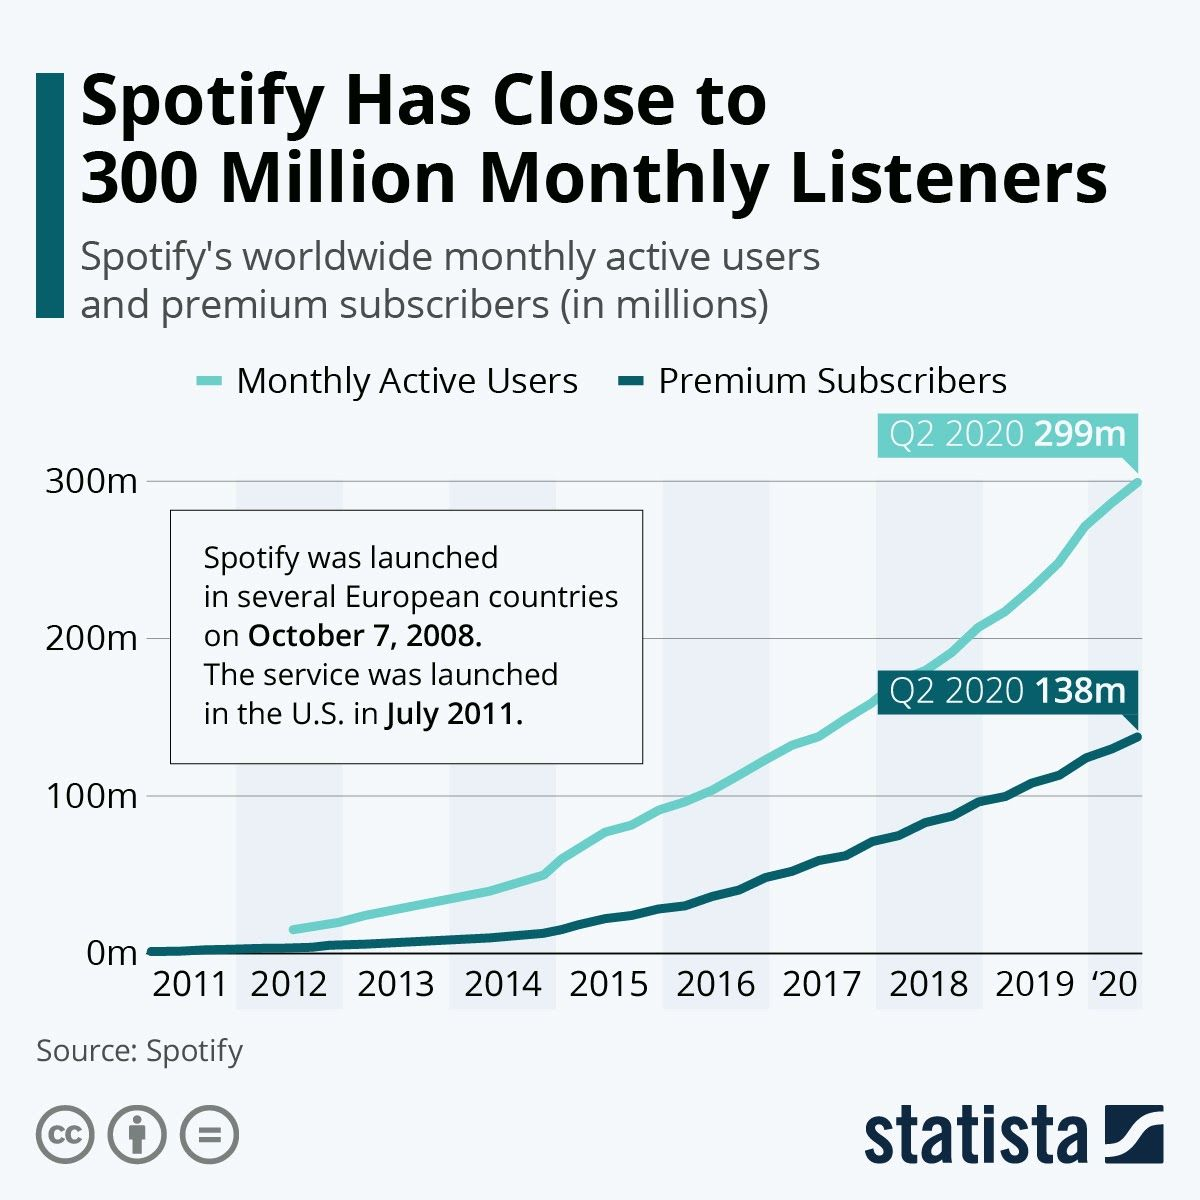 Spotify Has Close To 300 Million Monthly Listeners Infographic Finance Money Tecnology Music Infographic Infographic Marketing Social Media Infographic